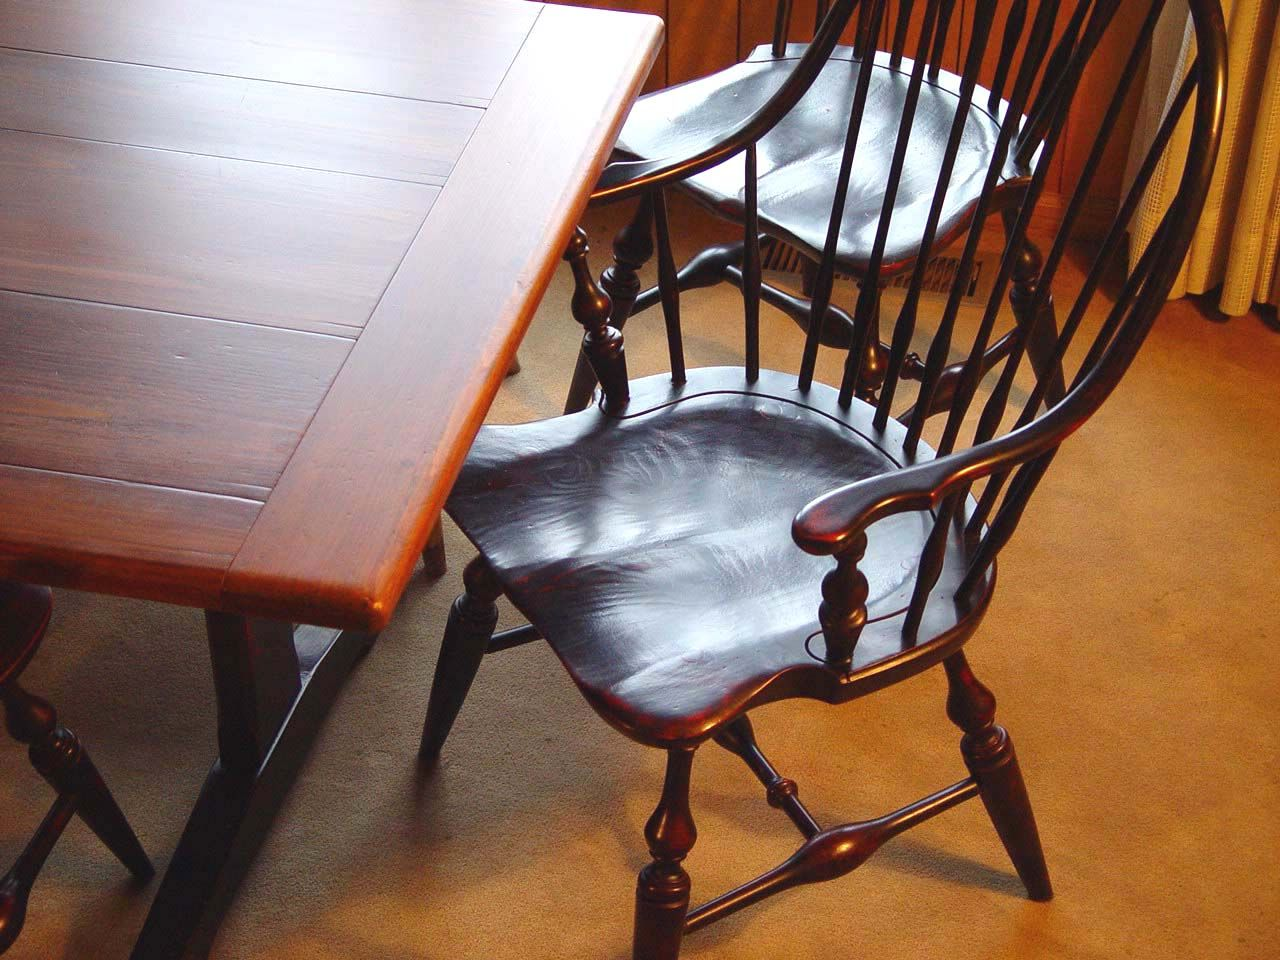 Ethan Allen Continuous Arm Bow Back Windsor That I Refinished In Black  Satin With A Colonial Red Undercoat. I Refinished A Set Of 6 And Paired The  Chairs ...